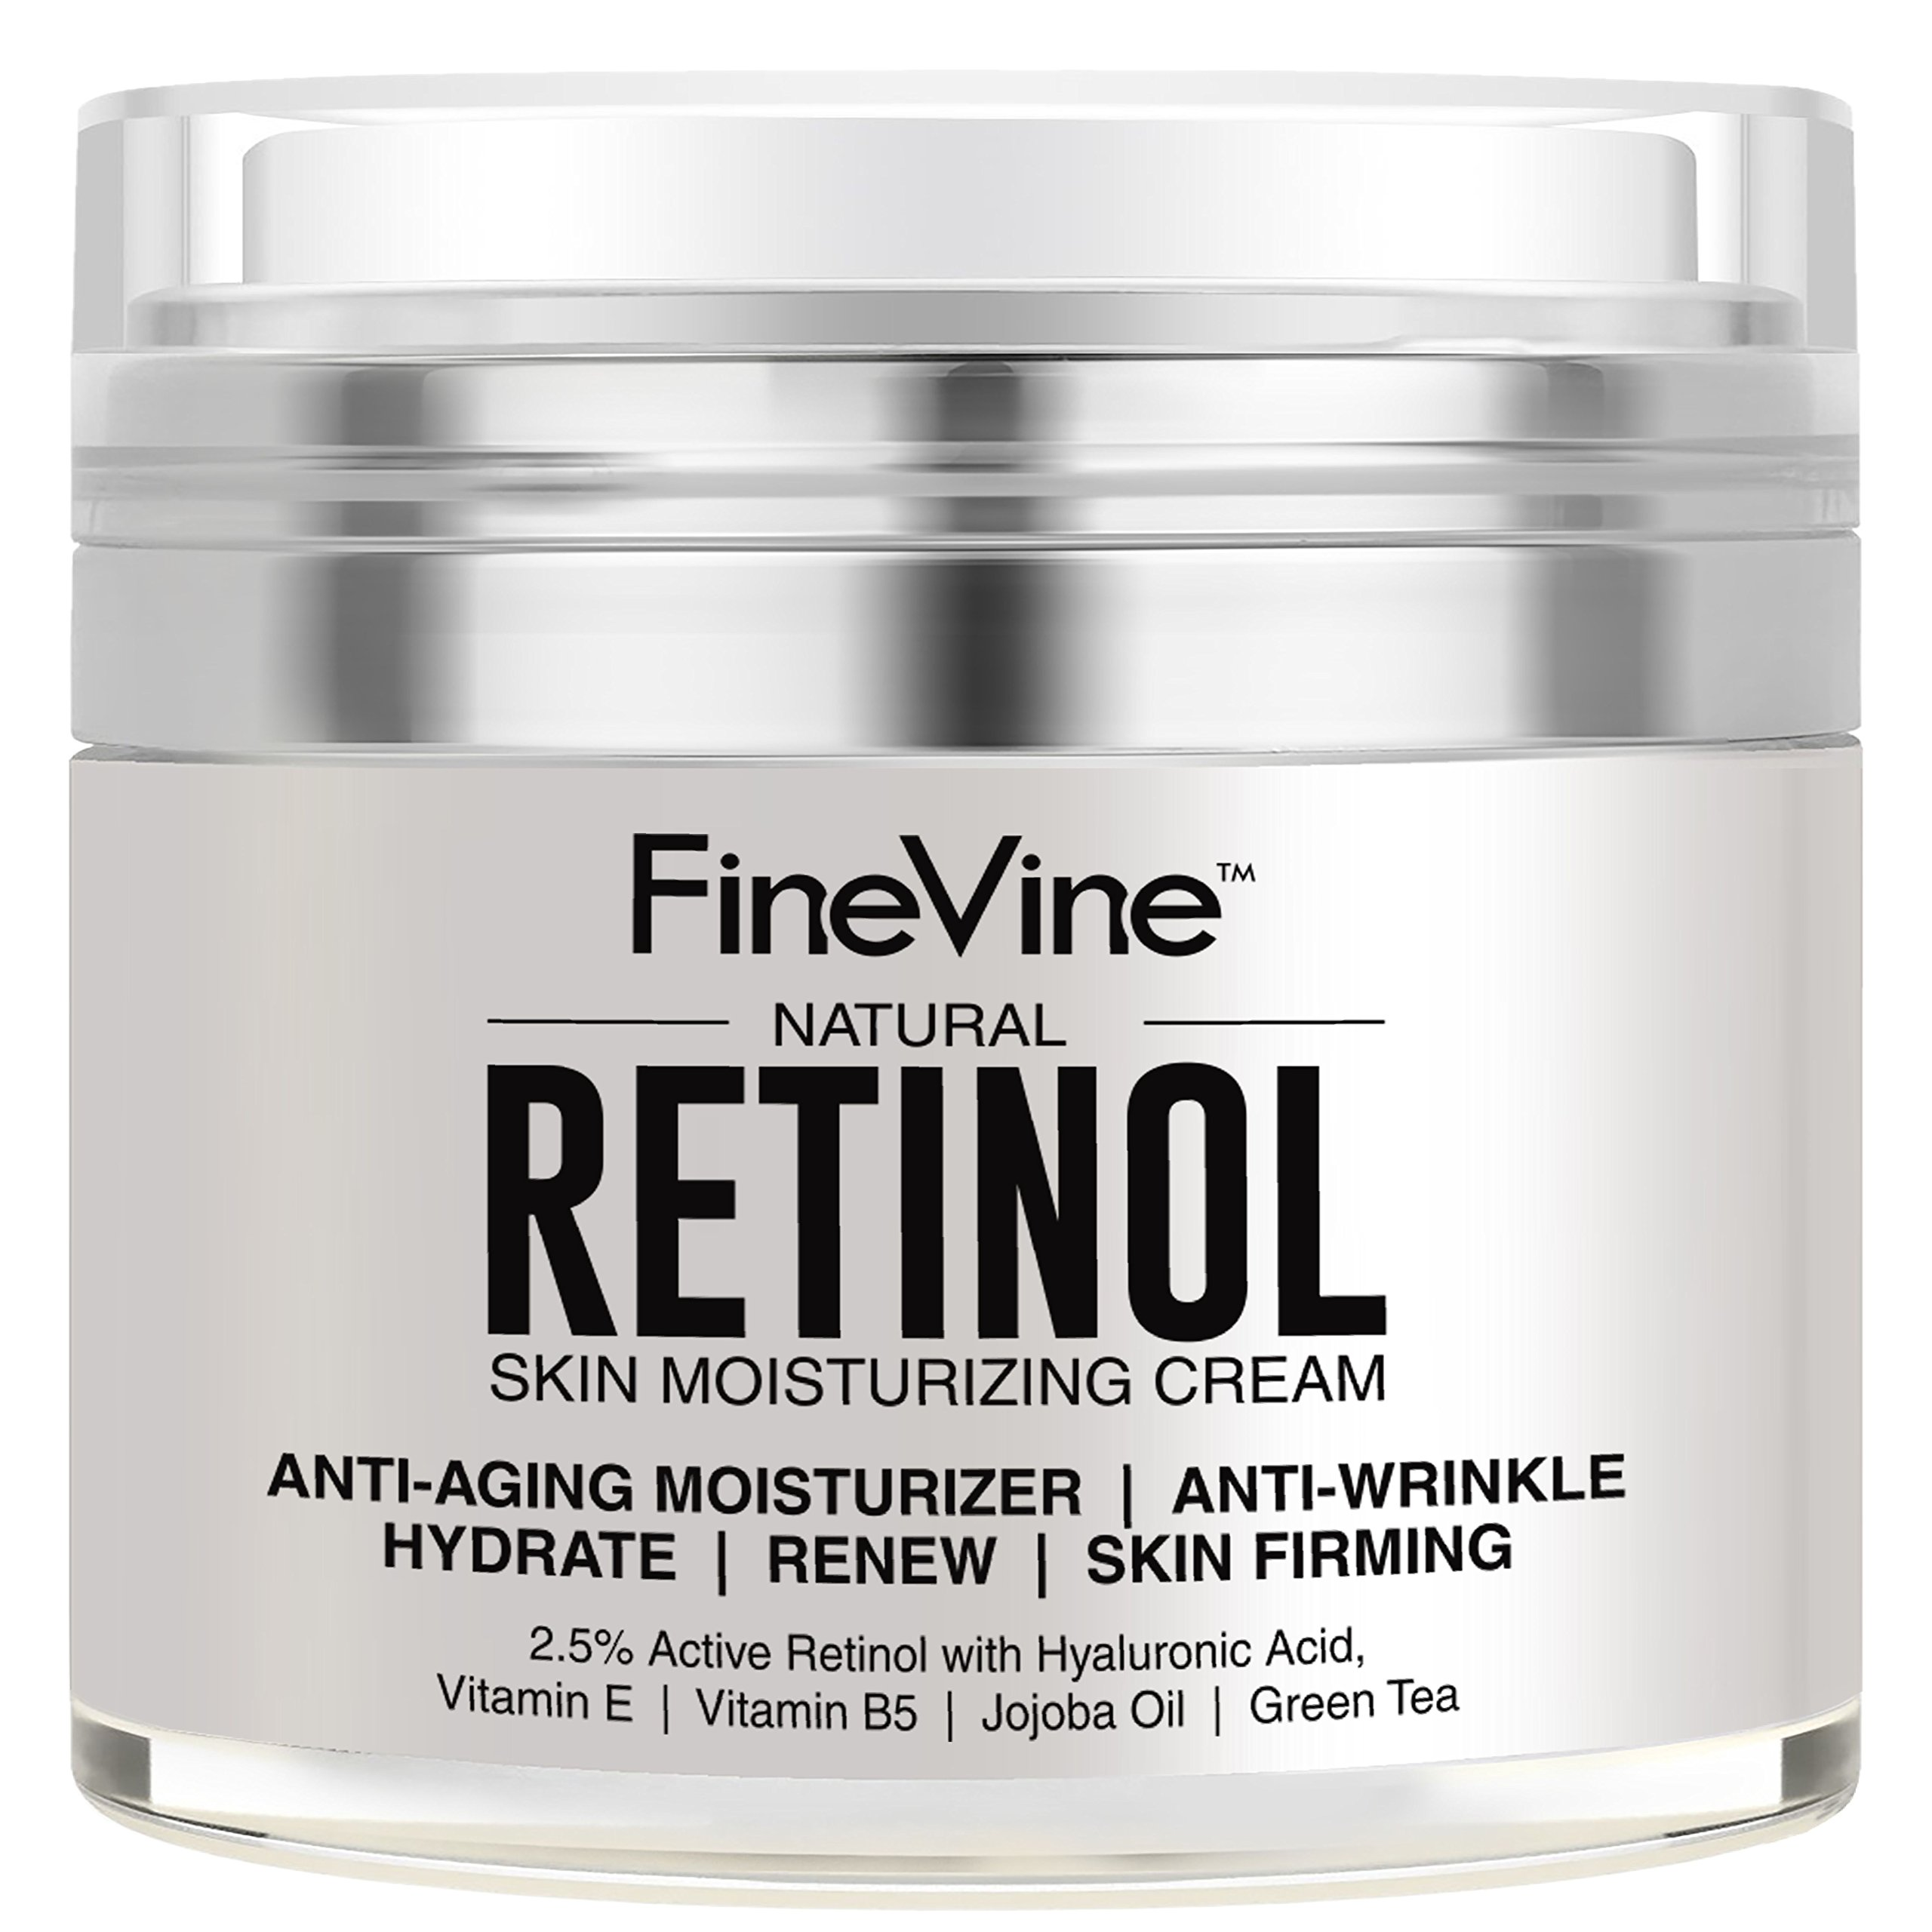 Retinol Moisturizer Cream for Face and Eye Area - Made in USA - with Hyaluronic Acid, Vitamin E - Best Day and Night Anti Aging Formula to Reduce Wrinkles, Fine Lines & Even Skin Tone. by FineVine